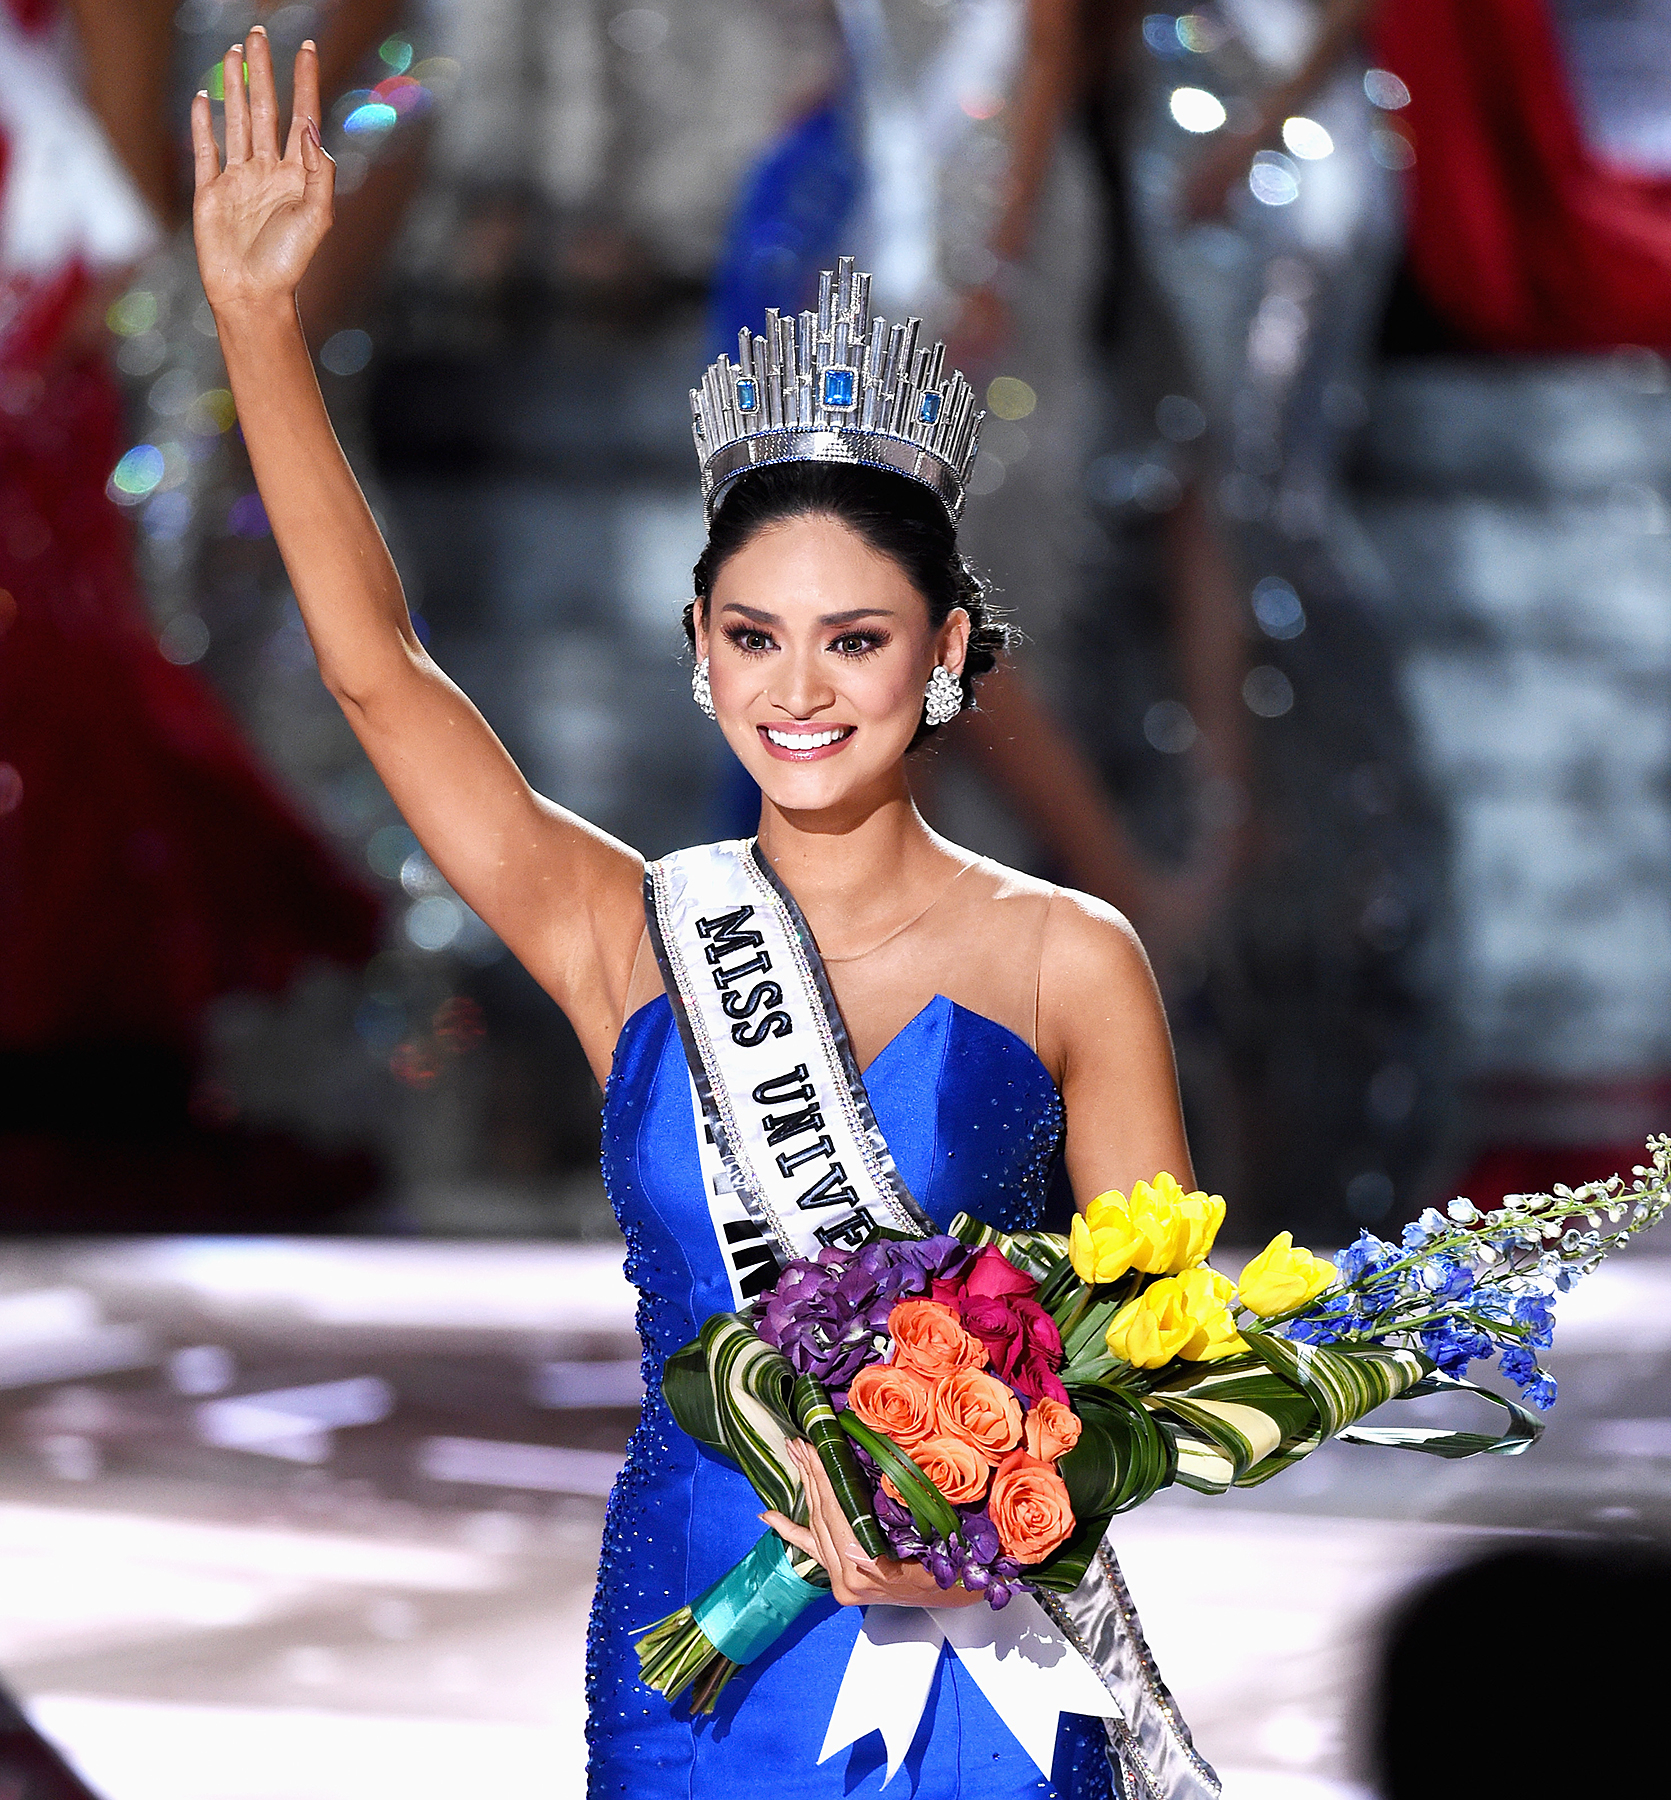 Miss Philippines Pia Alonzo Wurtzbach is named Miss Universe 2015.